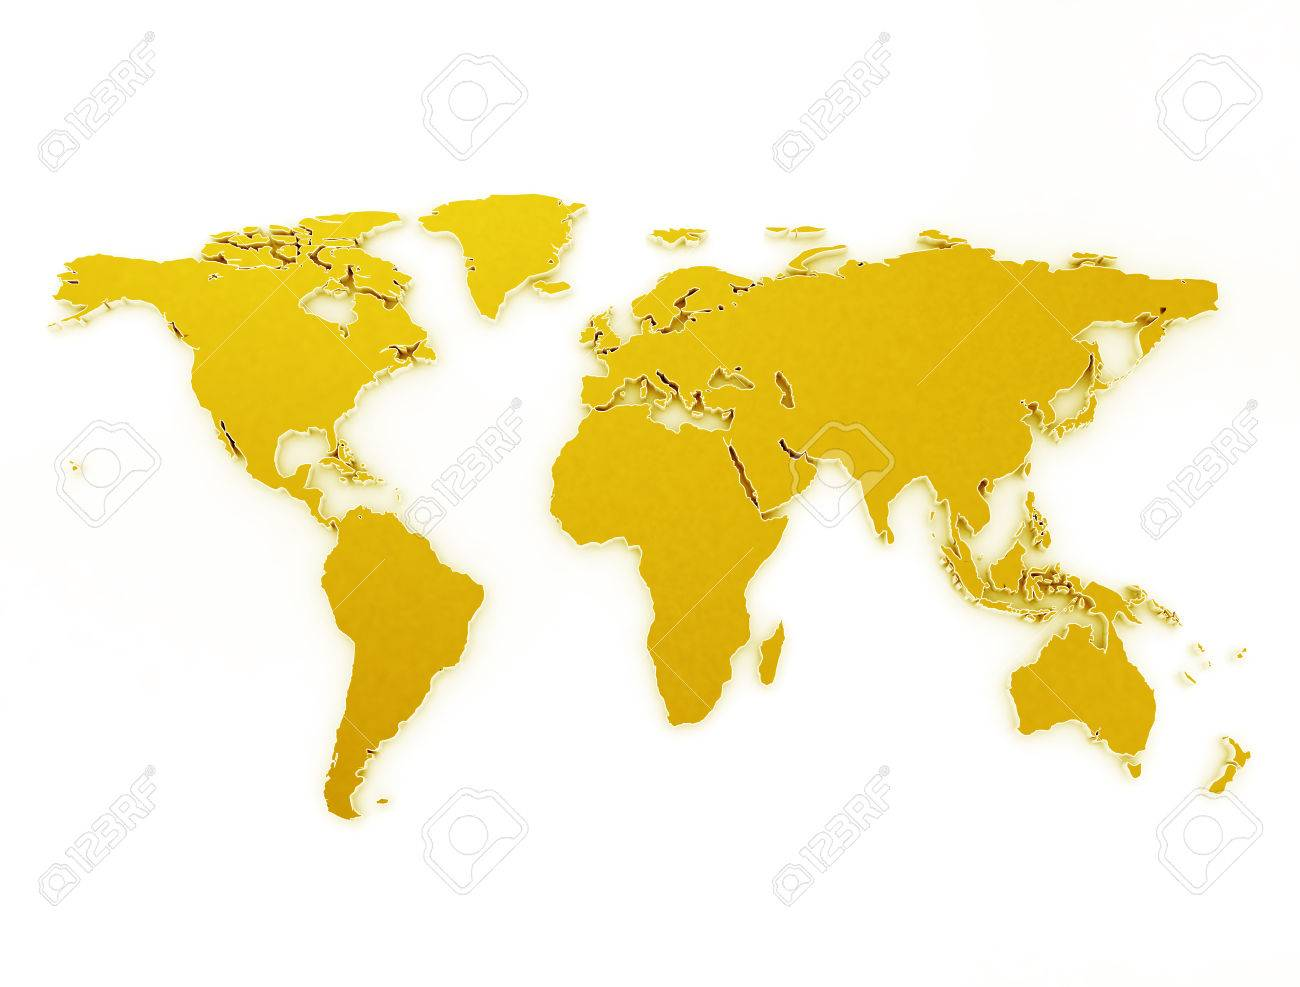 Gold world map 3d isolated on white background stock photo picture gold world map 3d isolated on white background stock photo 57992537 gumiabroncs Images